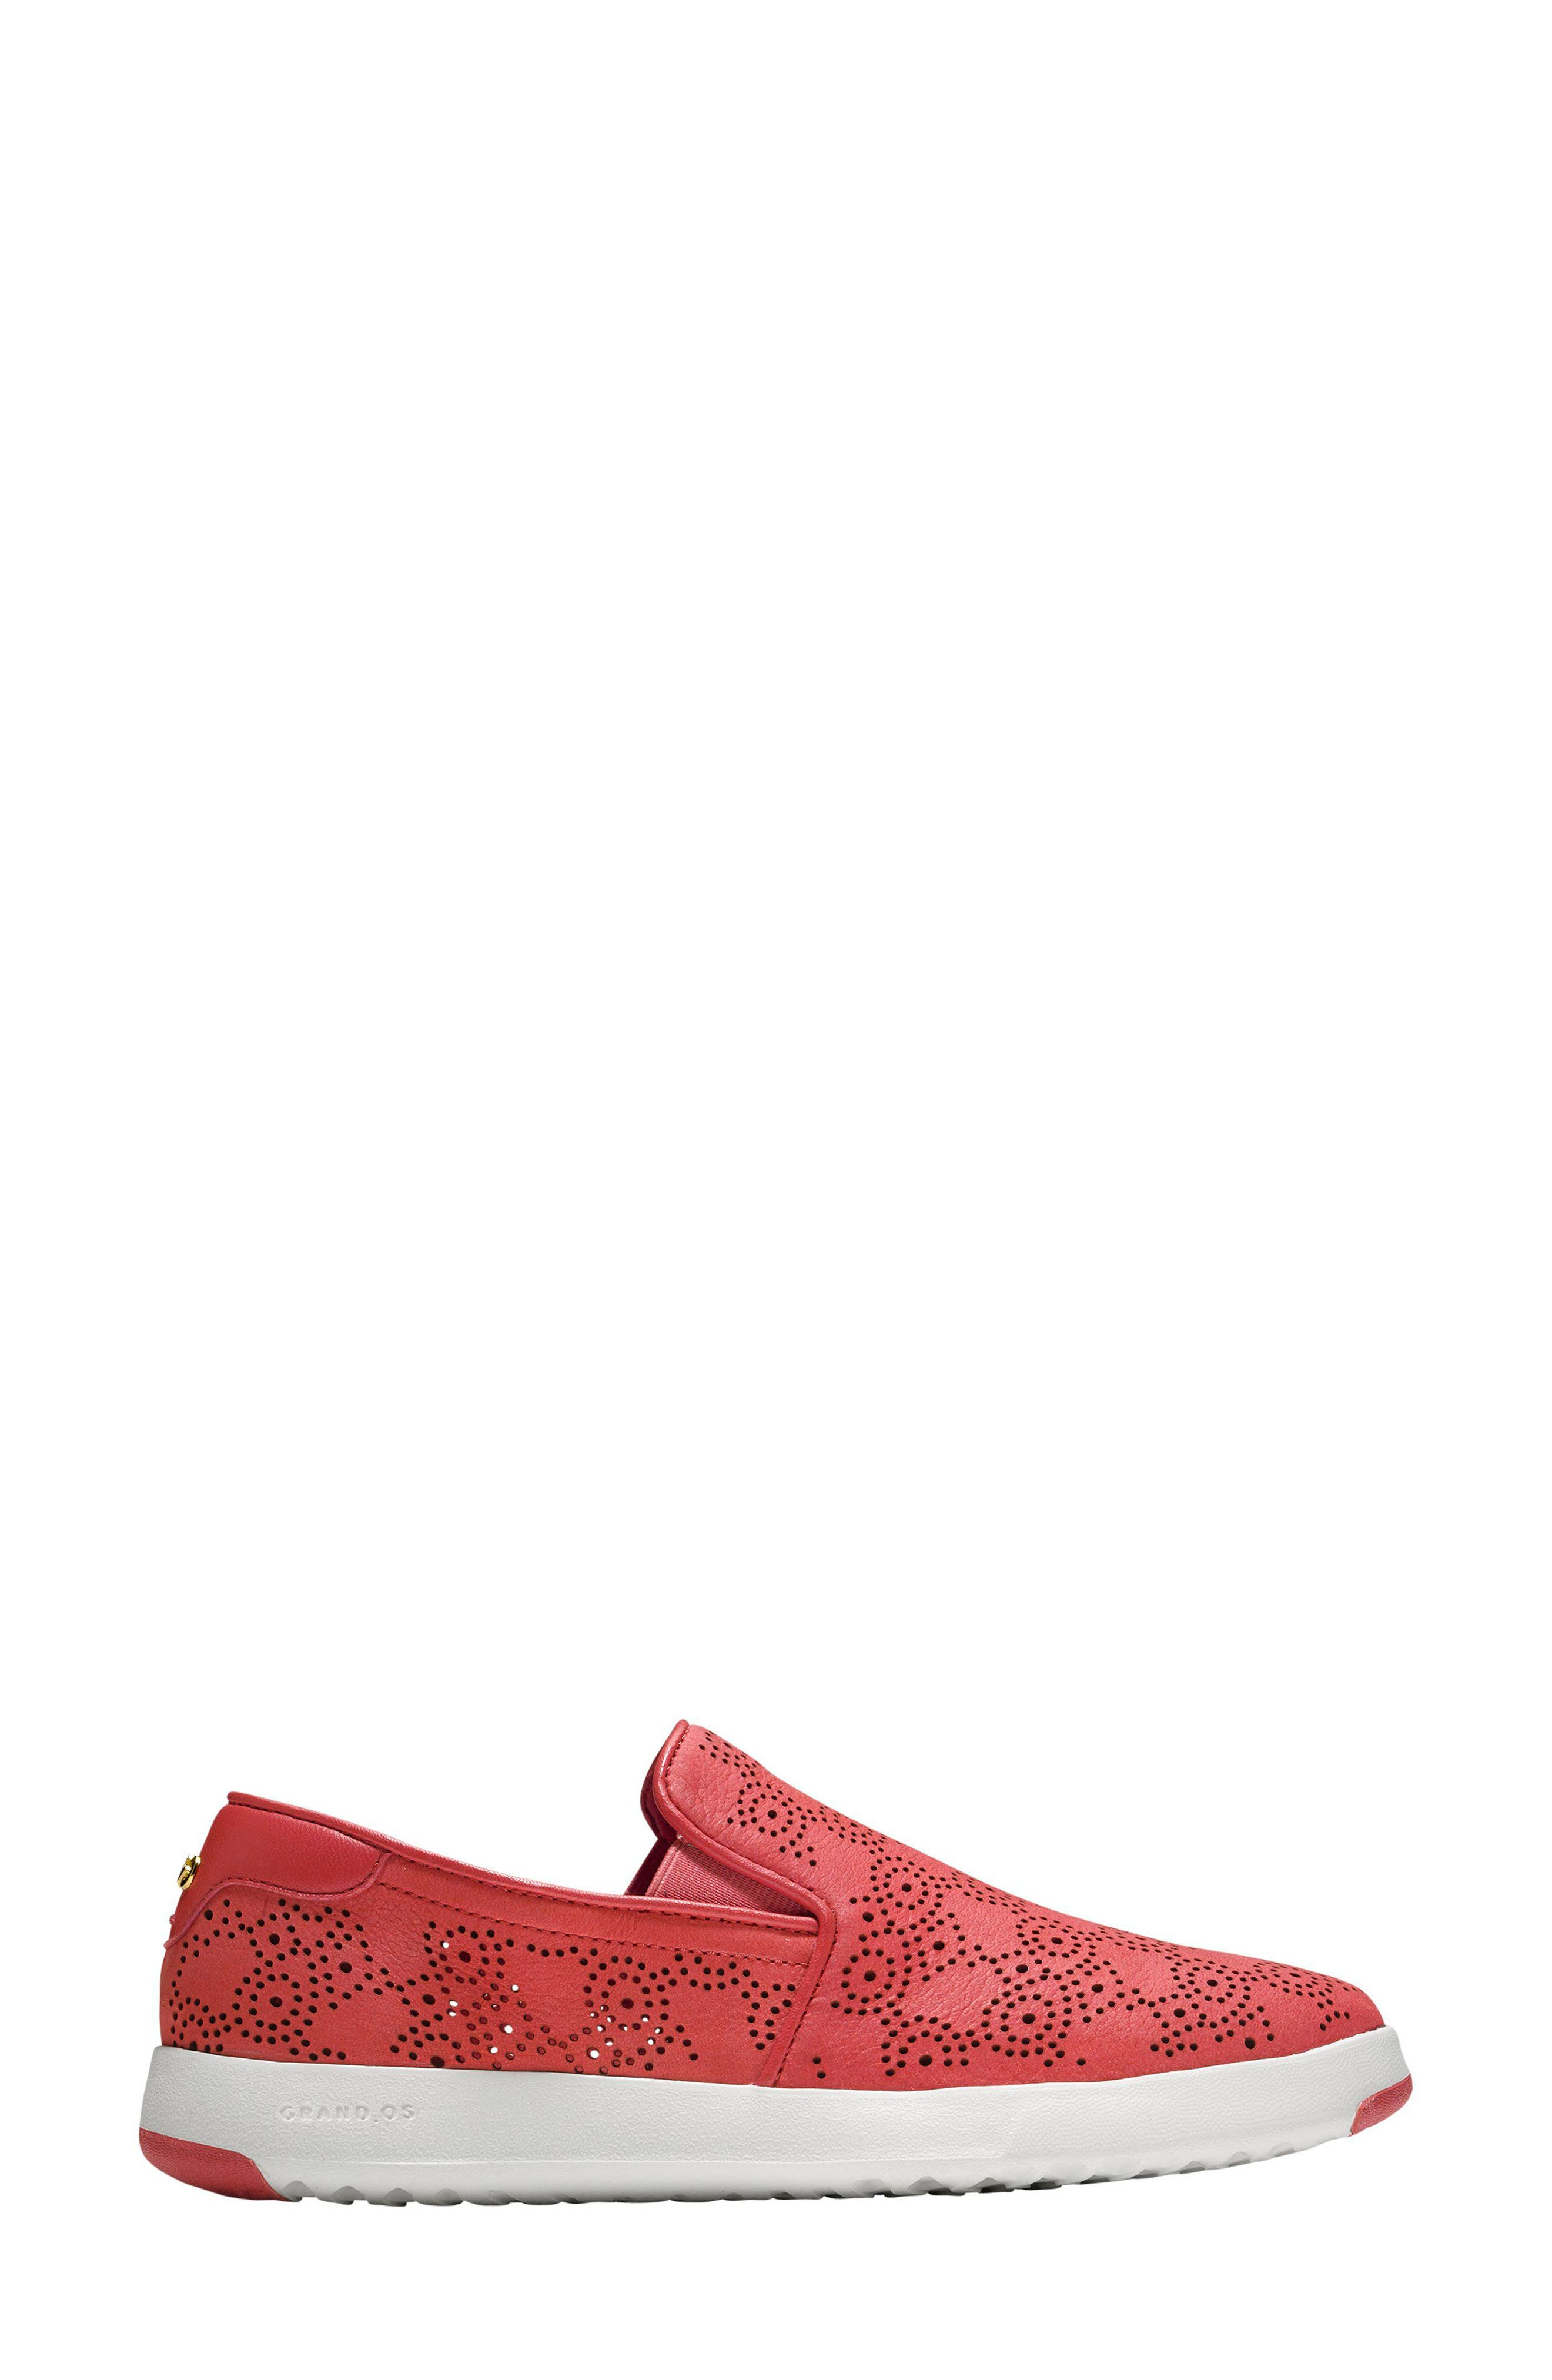 Alternate Image 3  - Cole Haan GrandPro Perforated Slip-On Sneaker (Women)